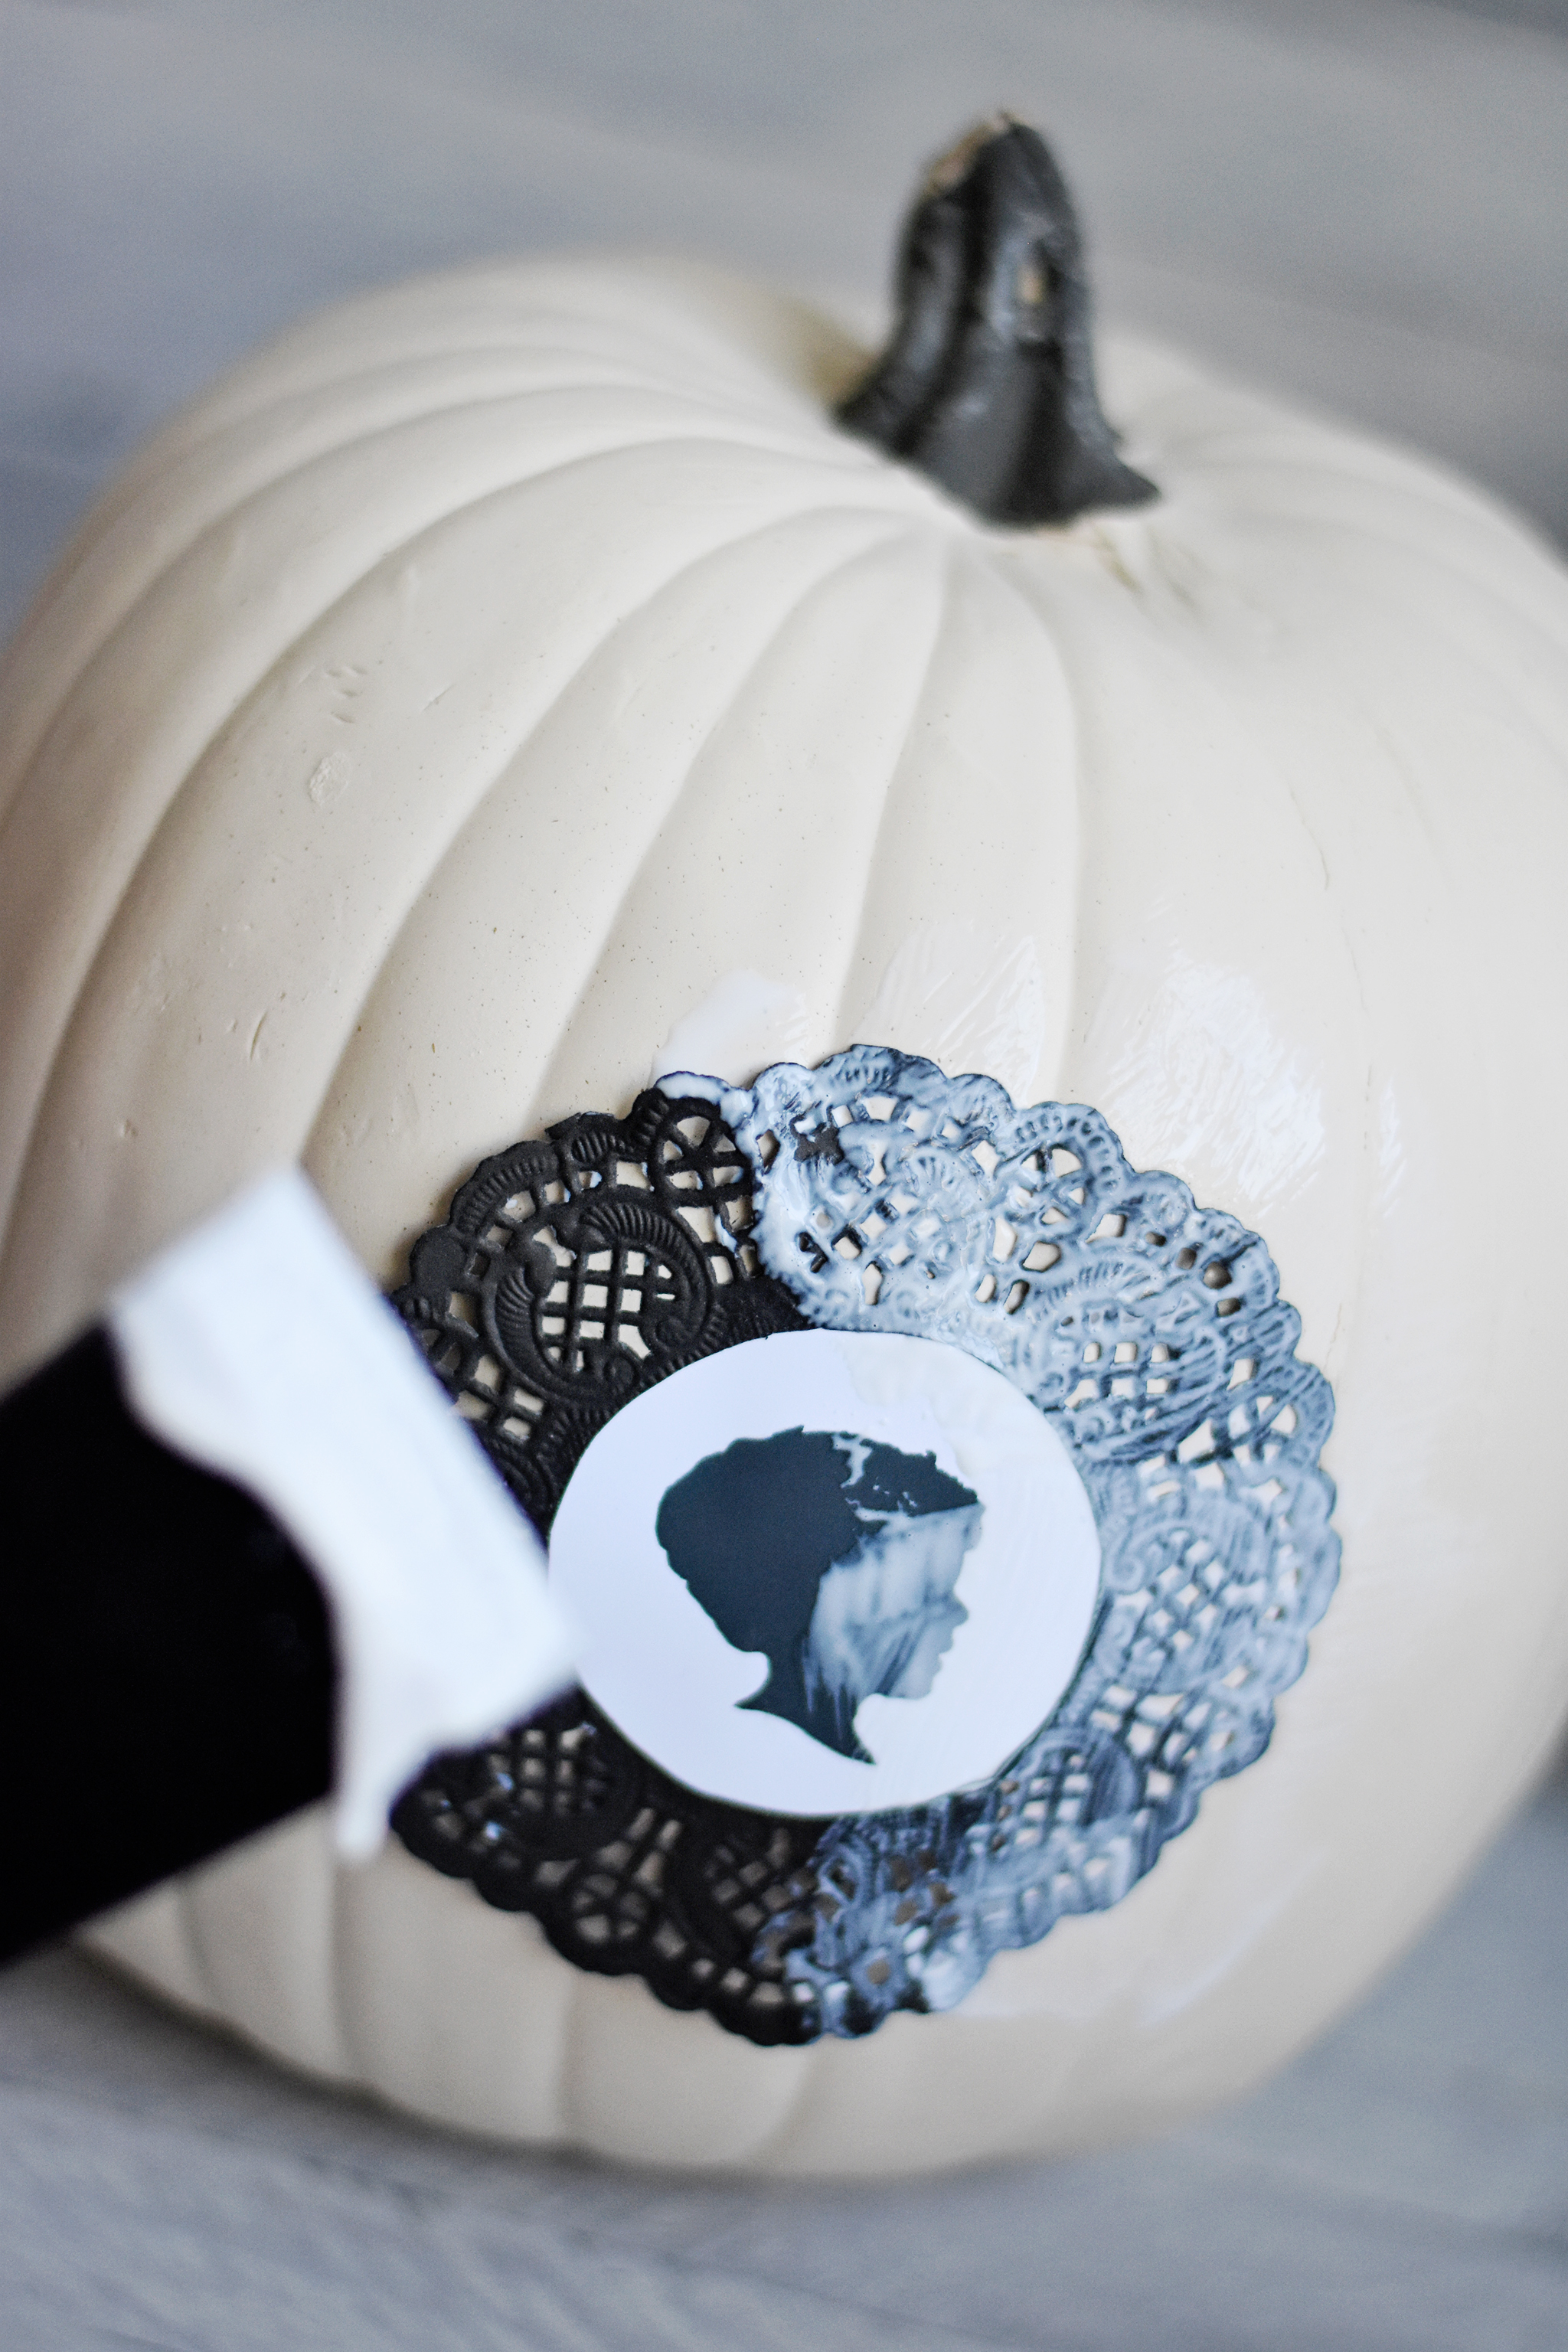 Decoupage your cameos onto your pumpkins!